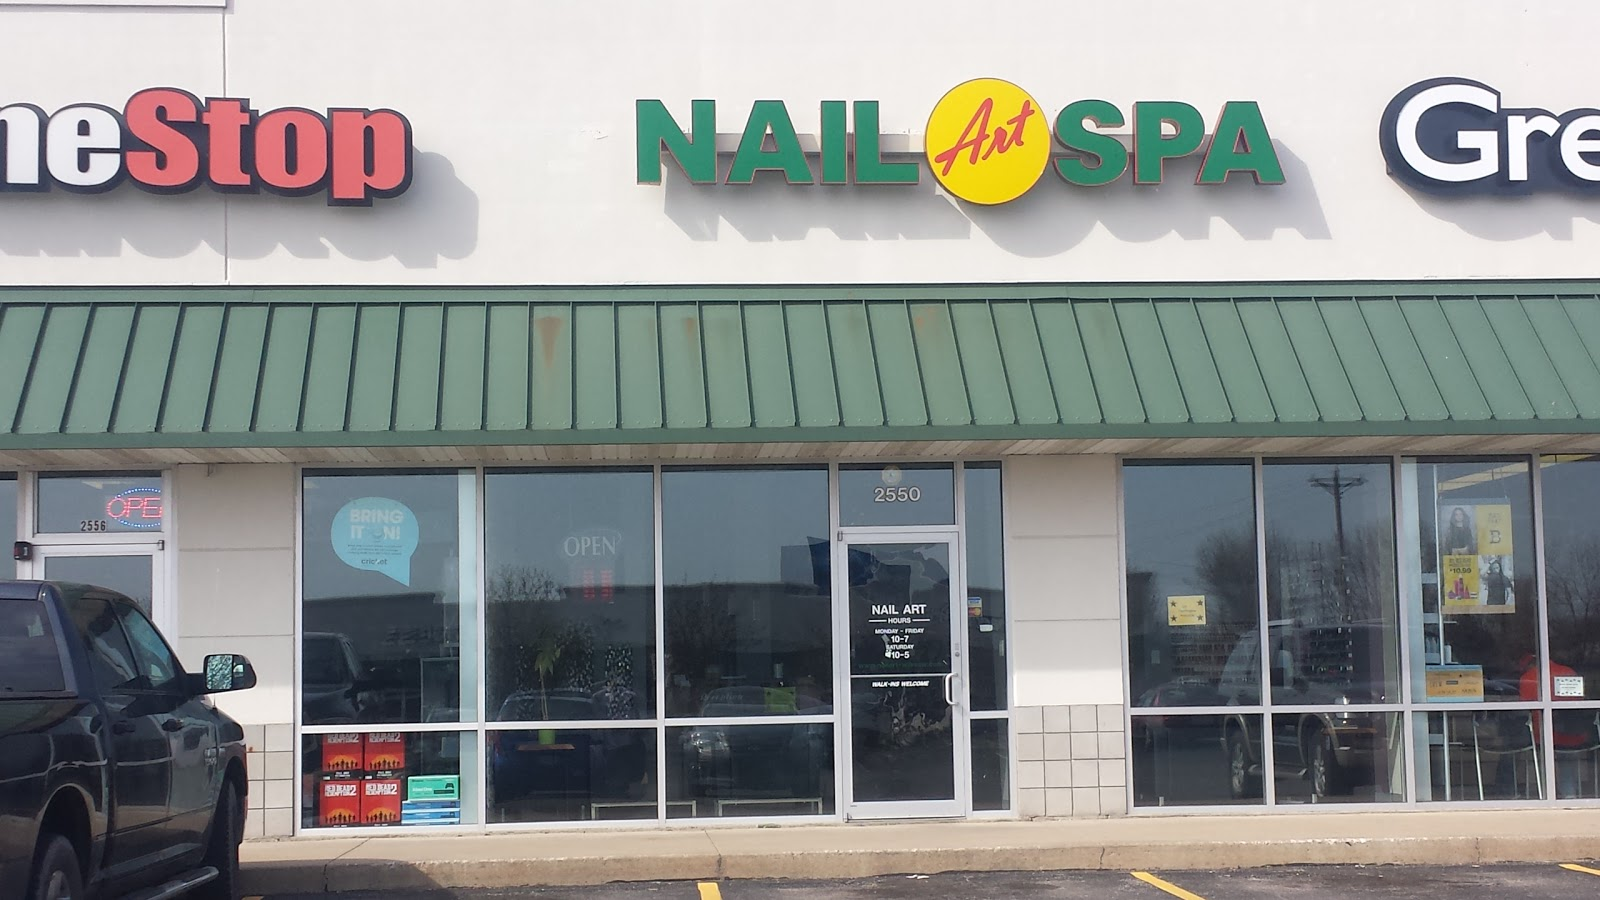 Nail Art II, 2544 Walton Boulevard, Warsaw, Reviews and Appointments ...